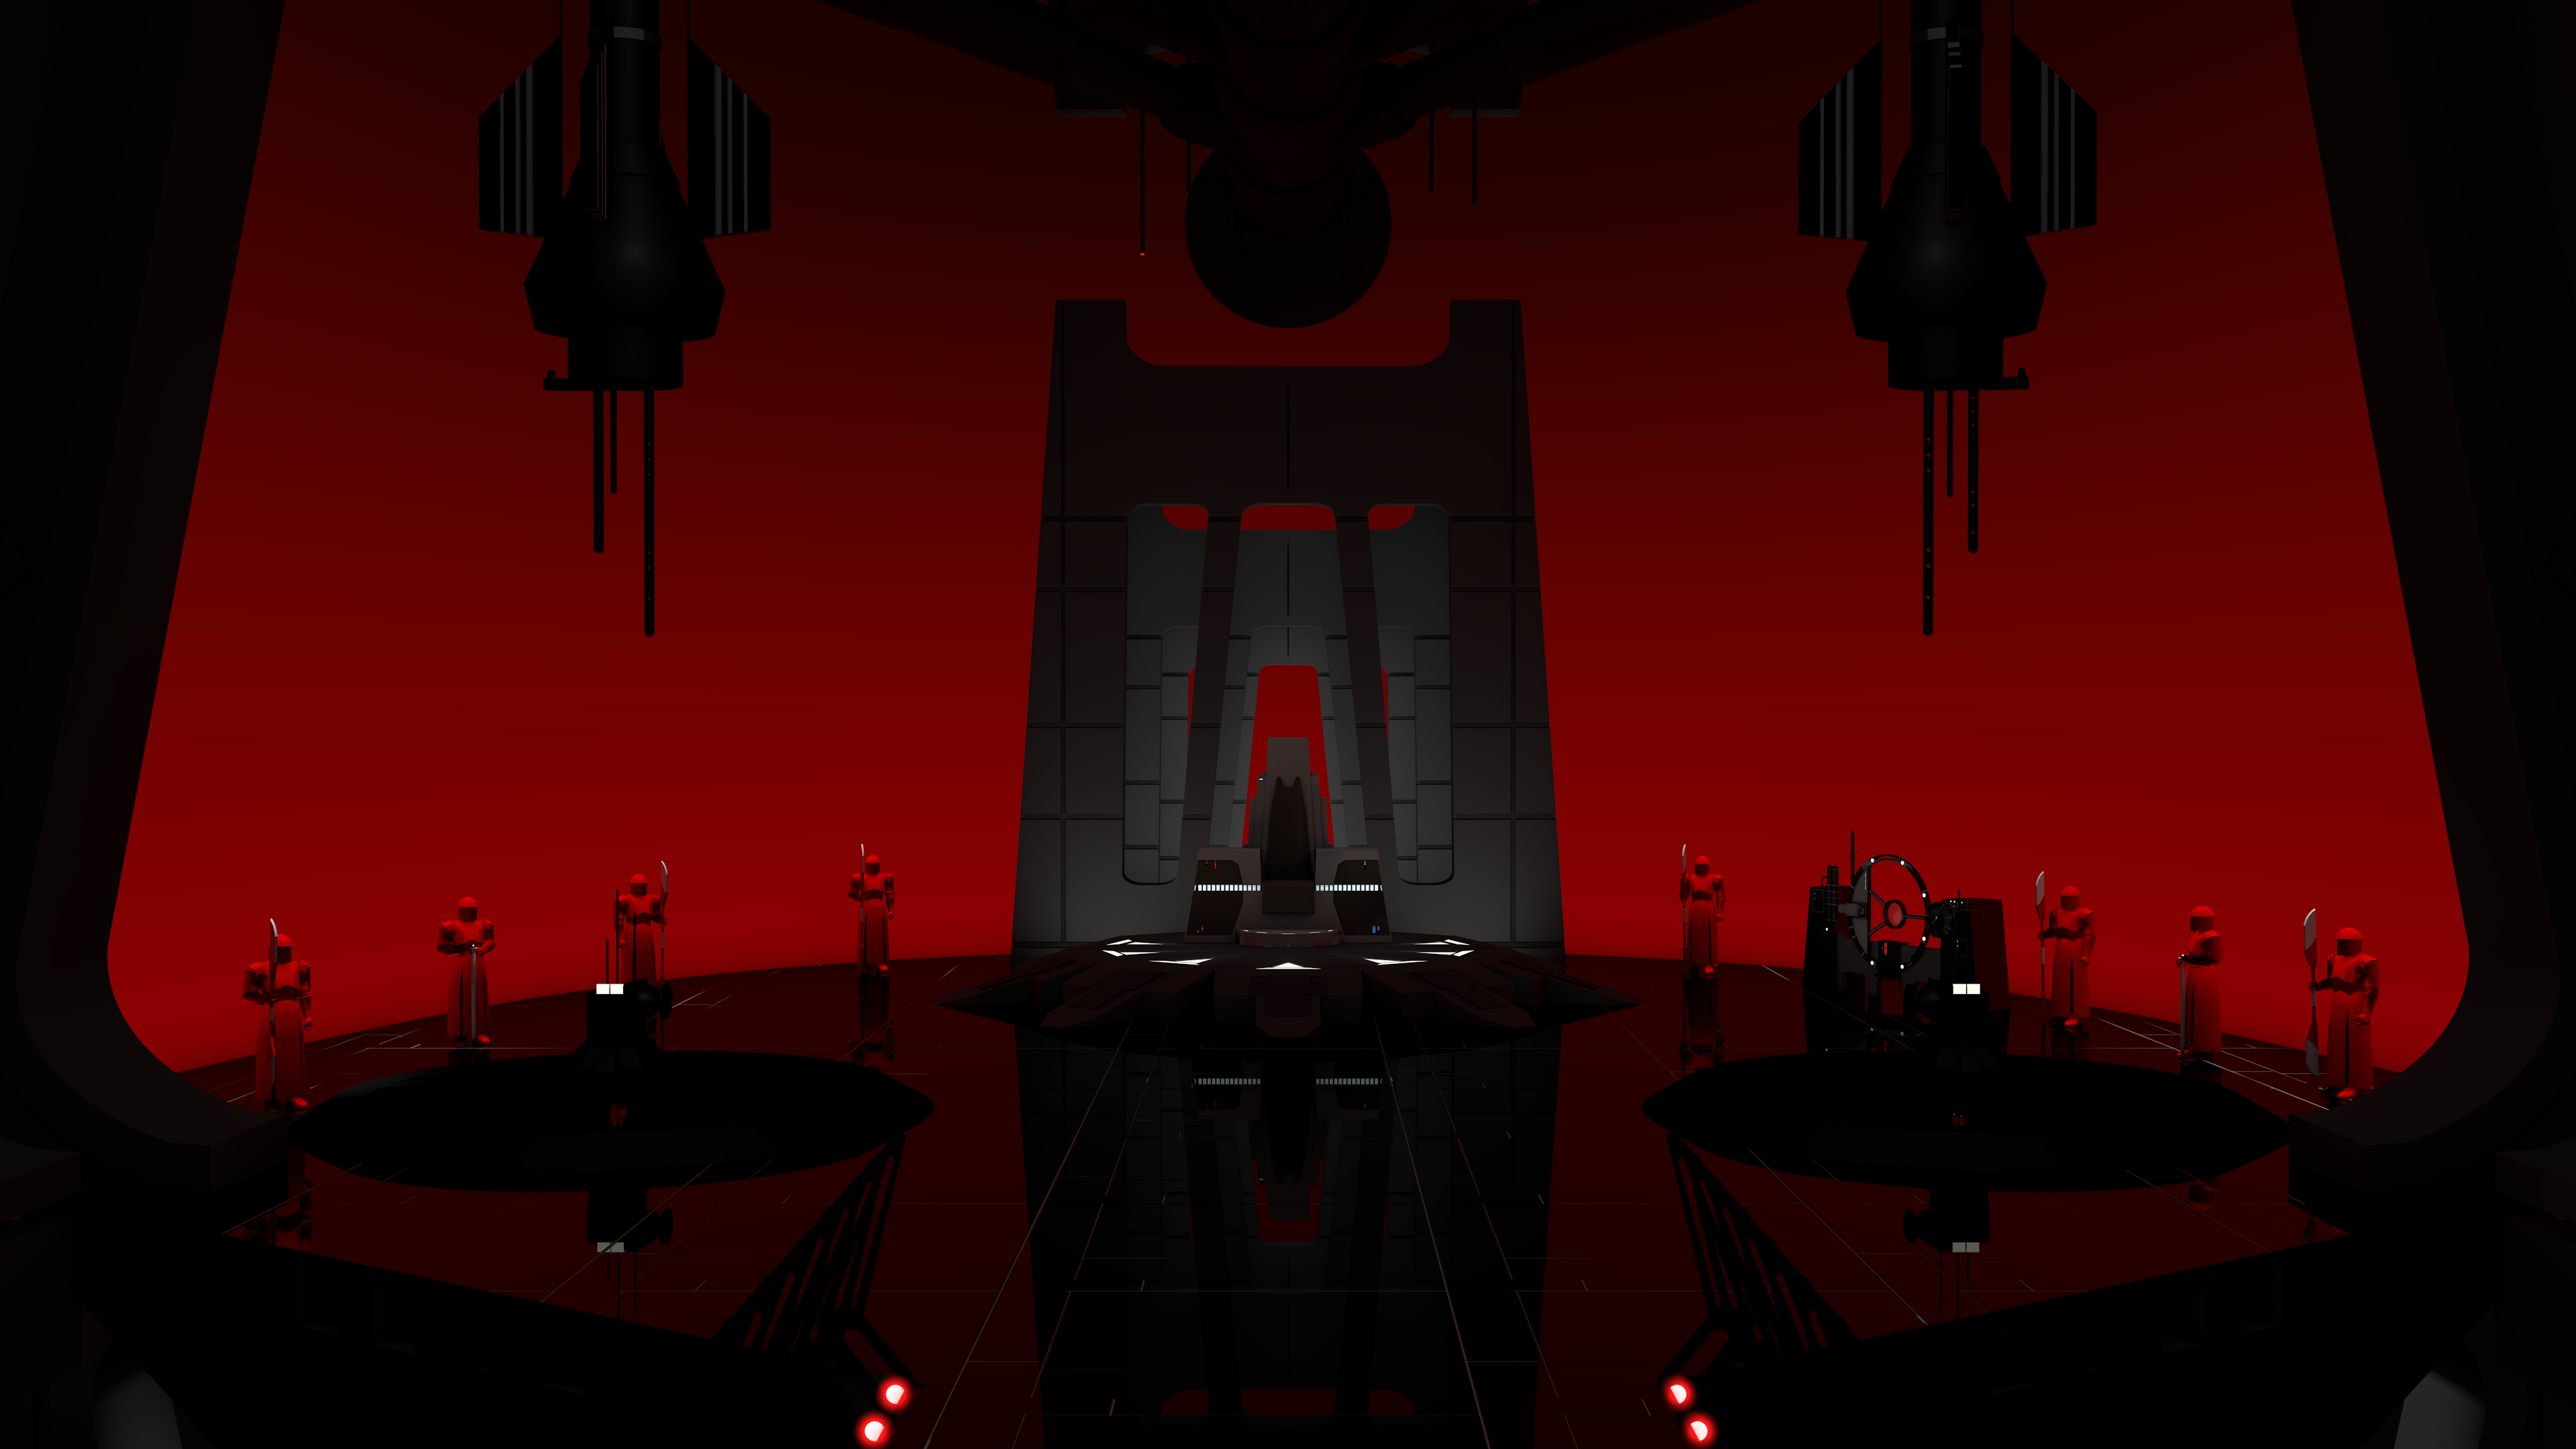 Snoke S Throne Room By T5ub4sa On Deviantart